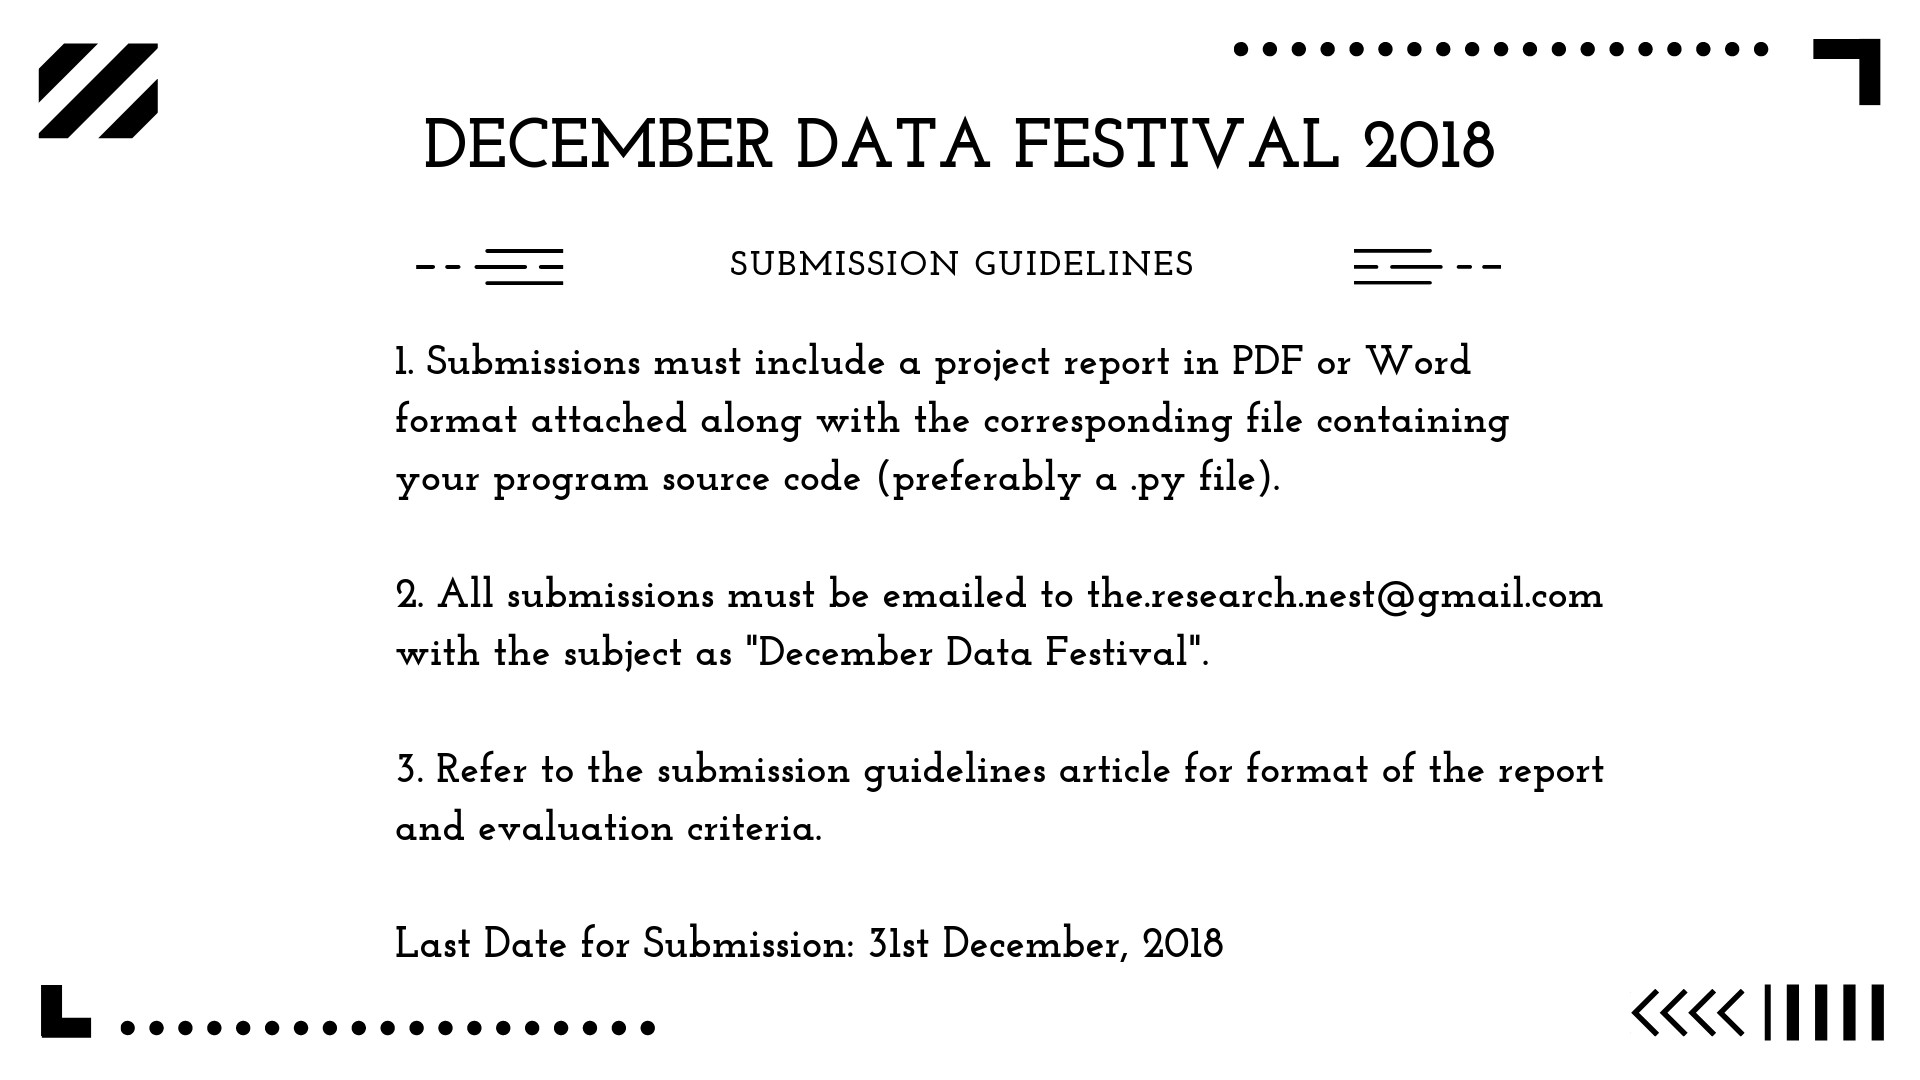 012 Research Paper Data Science Papers Pdf 1mqc R3fe Sensational 2018 1920